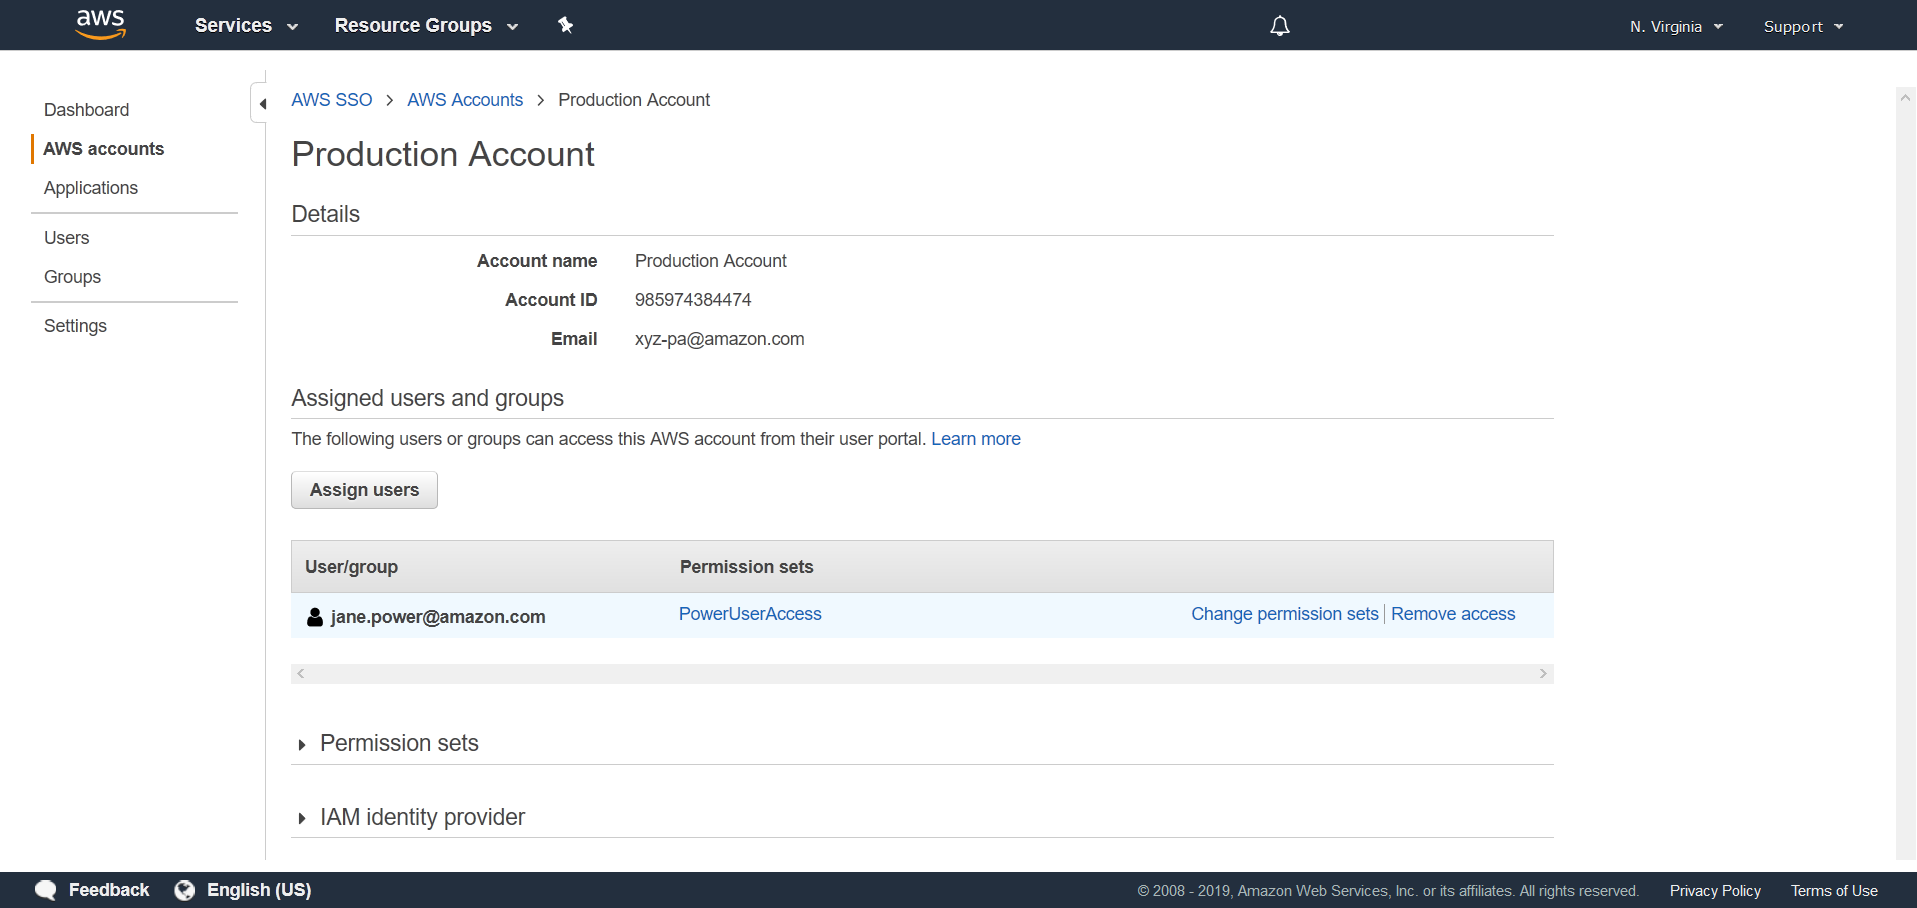 Manage SSO access for multiple AWS accounts